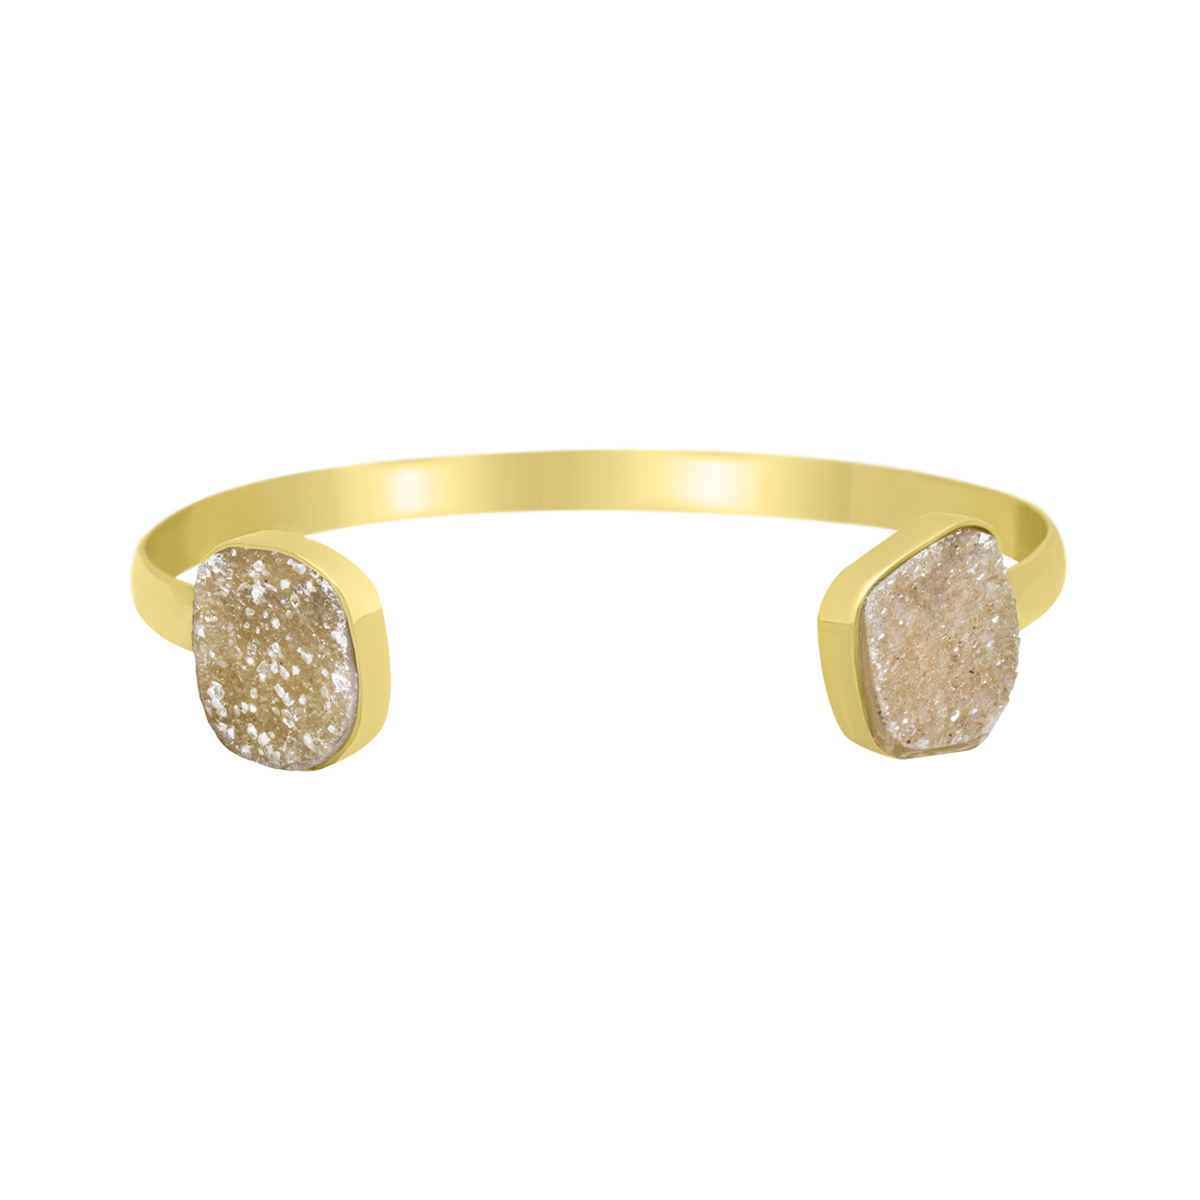 deb86fe661d9 18K yellow gold plated adjustable bracelet with high gloss druzy agate -  Sarah Kosta